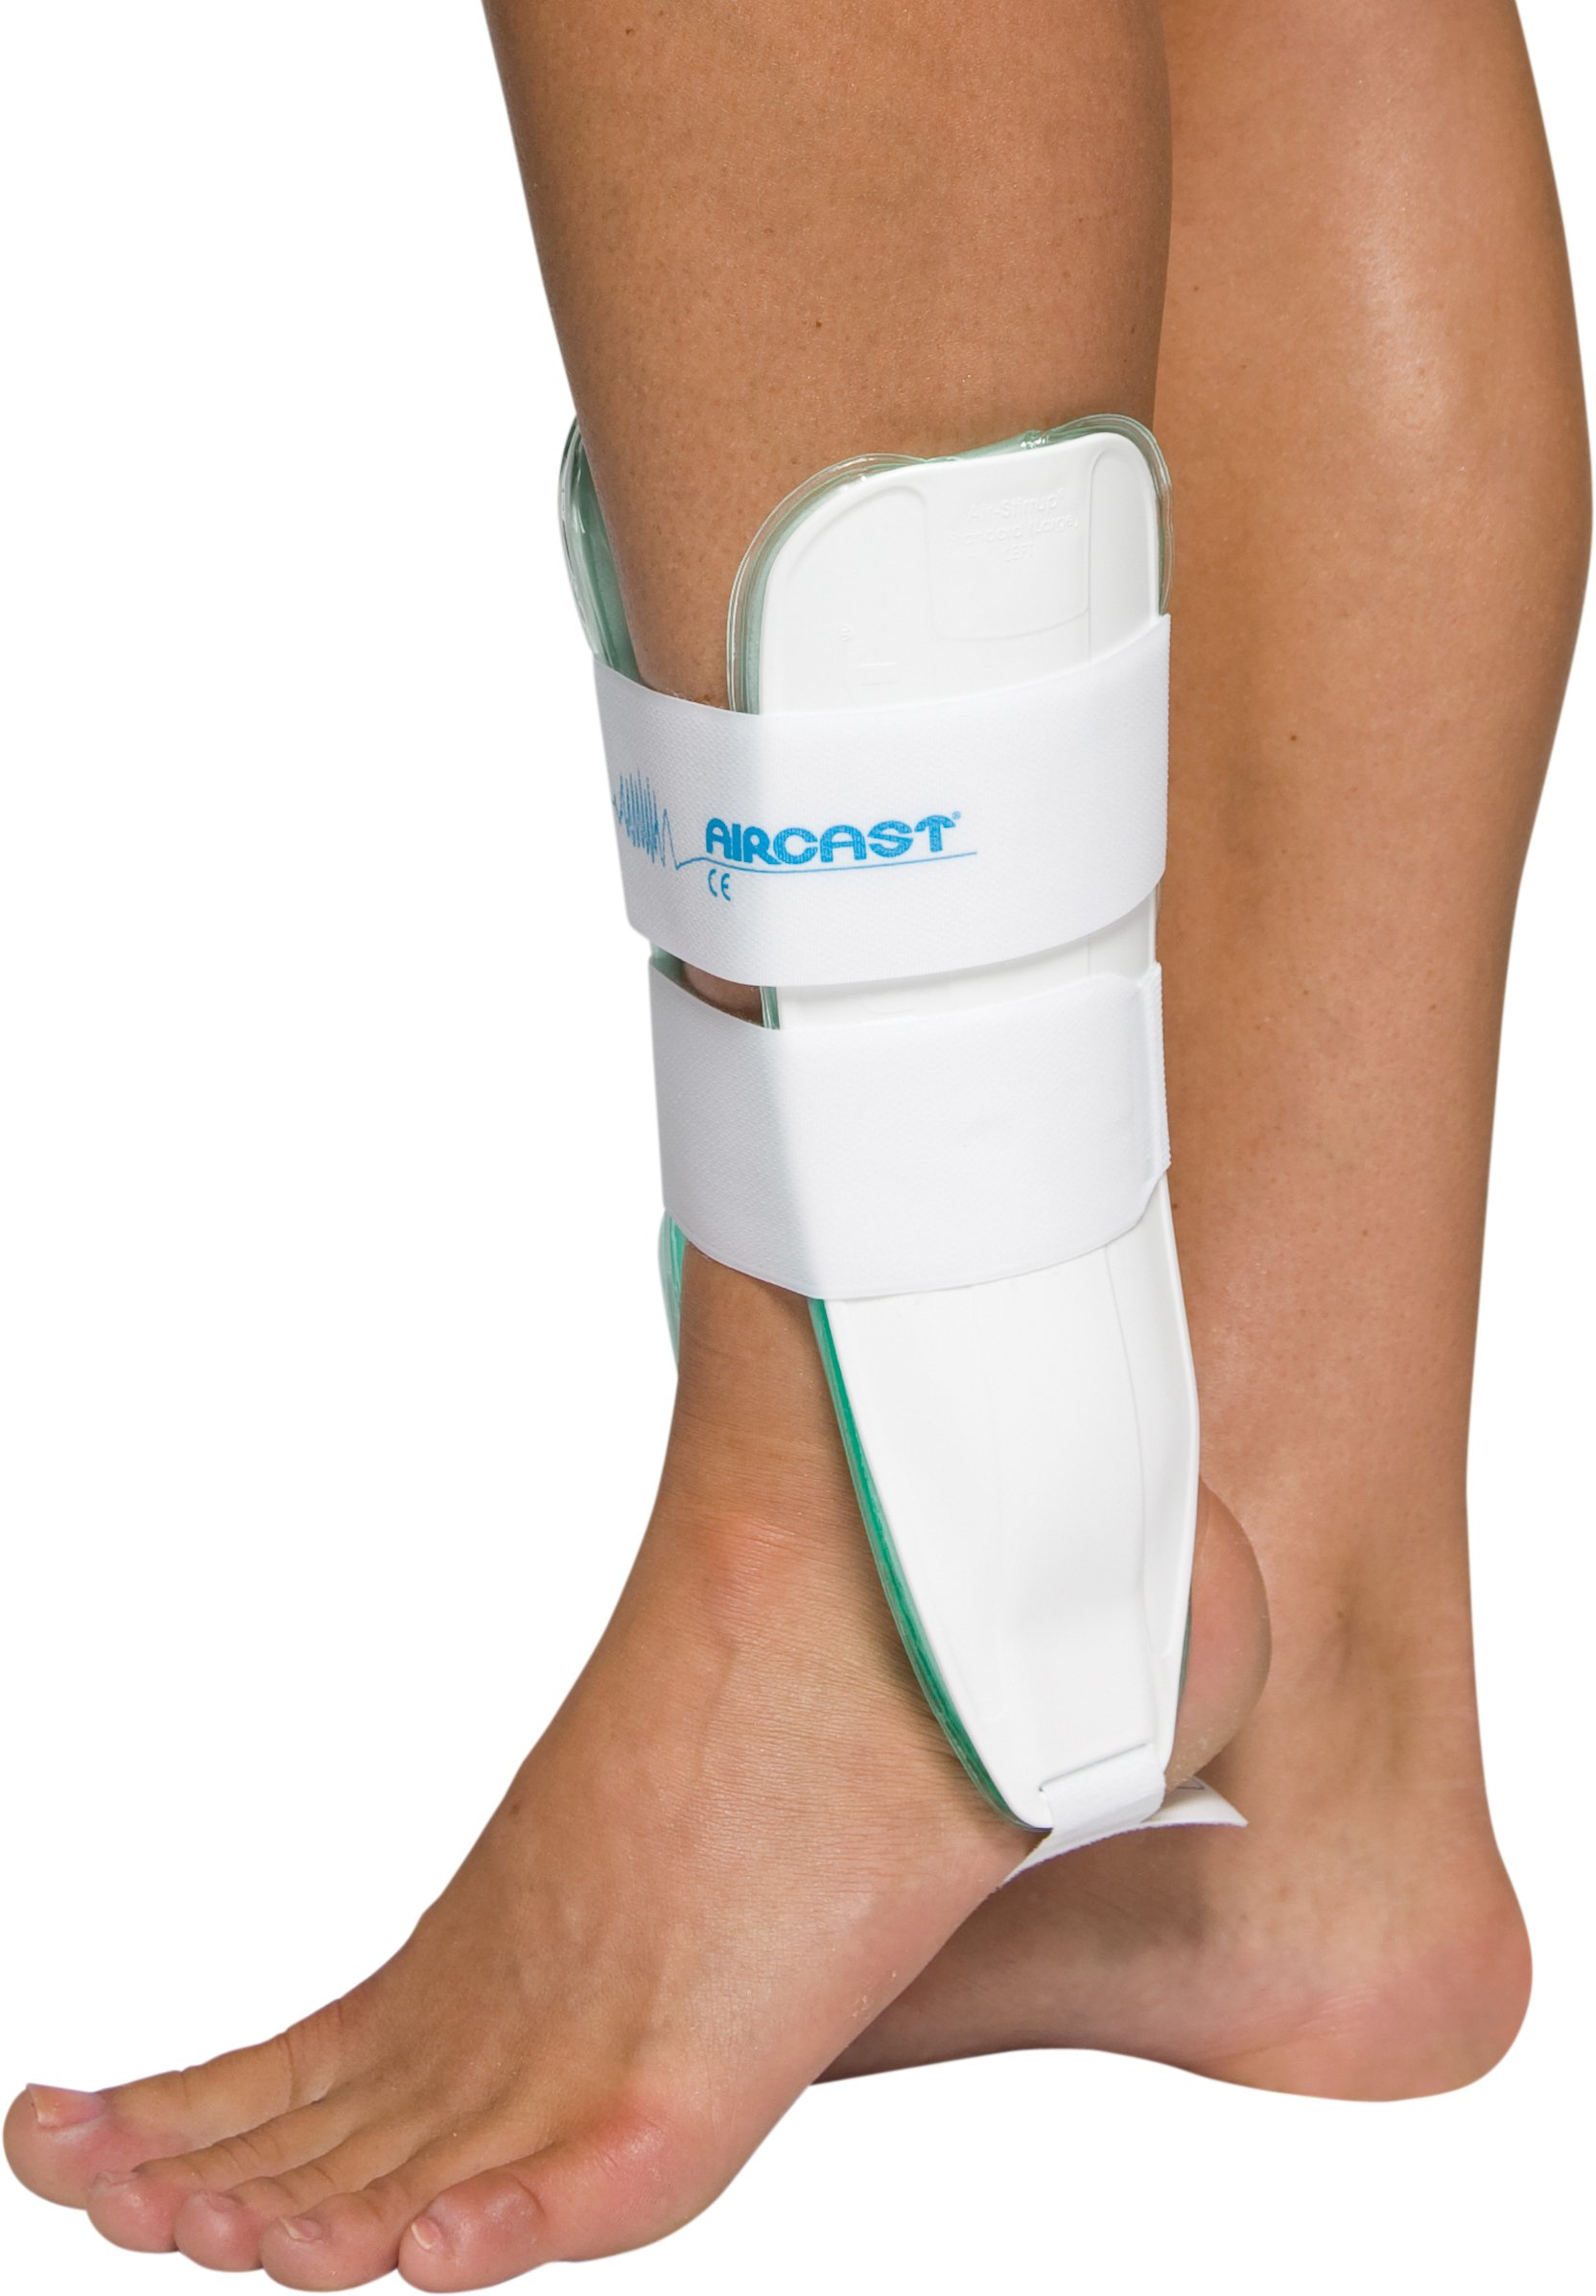 Aircast Air-Stirrup Ankle Support Brace, Left Foot, Large